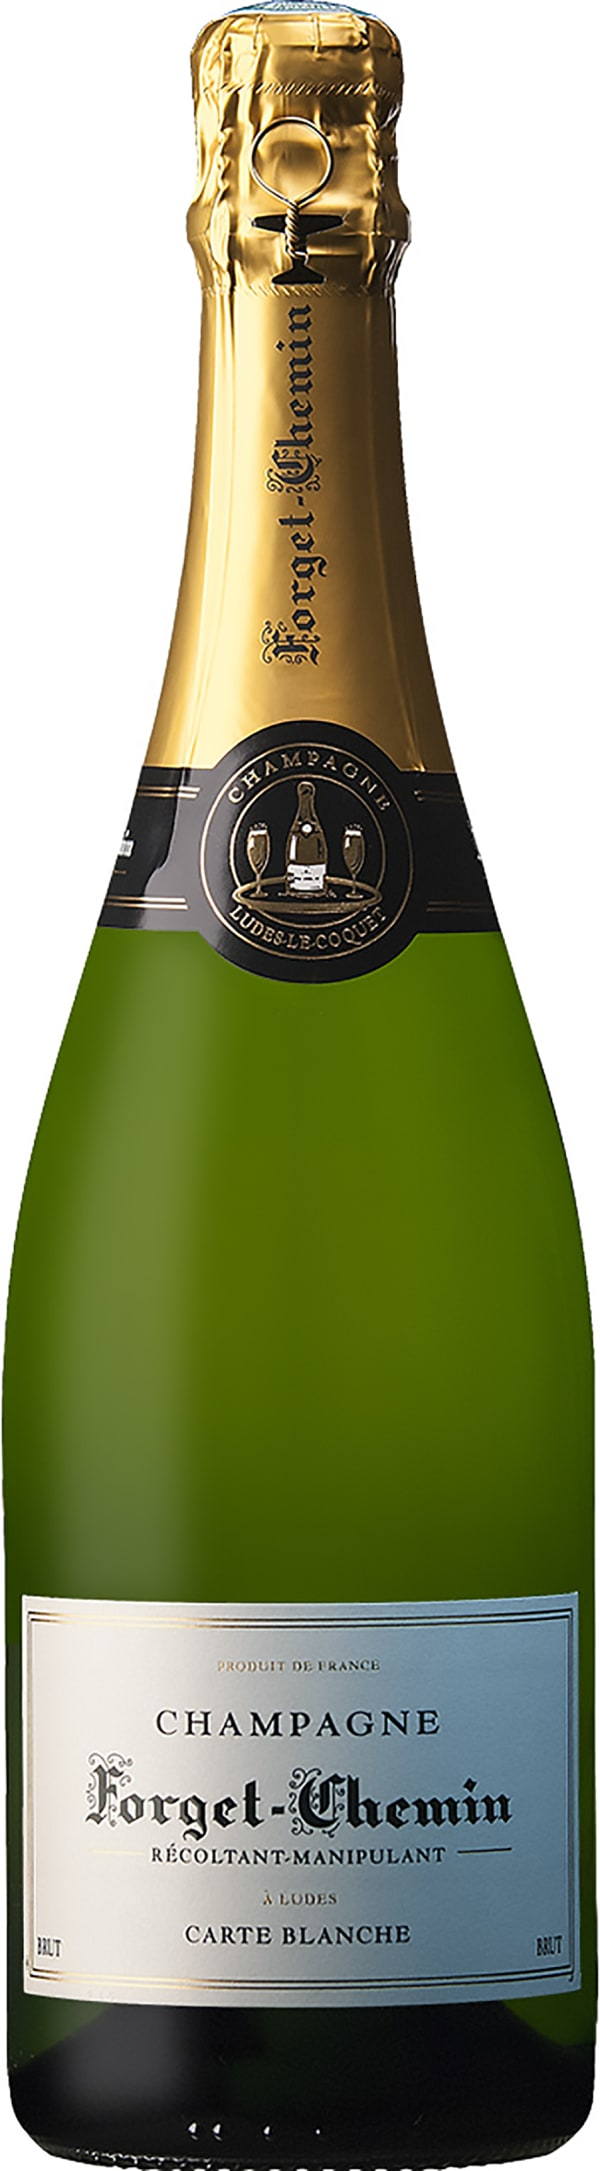 Forget-Chemin Carte Blanche Champagne Brut